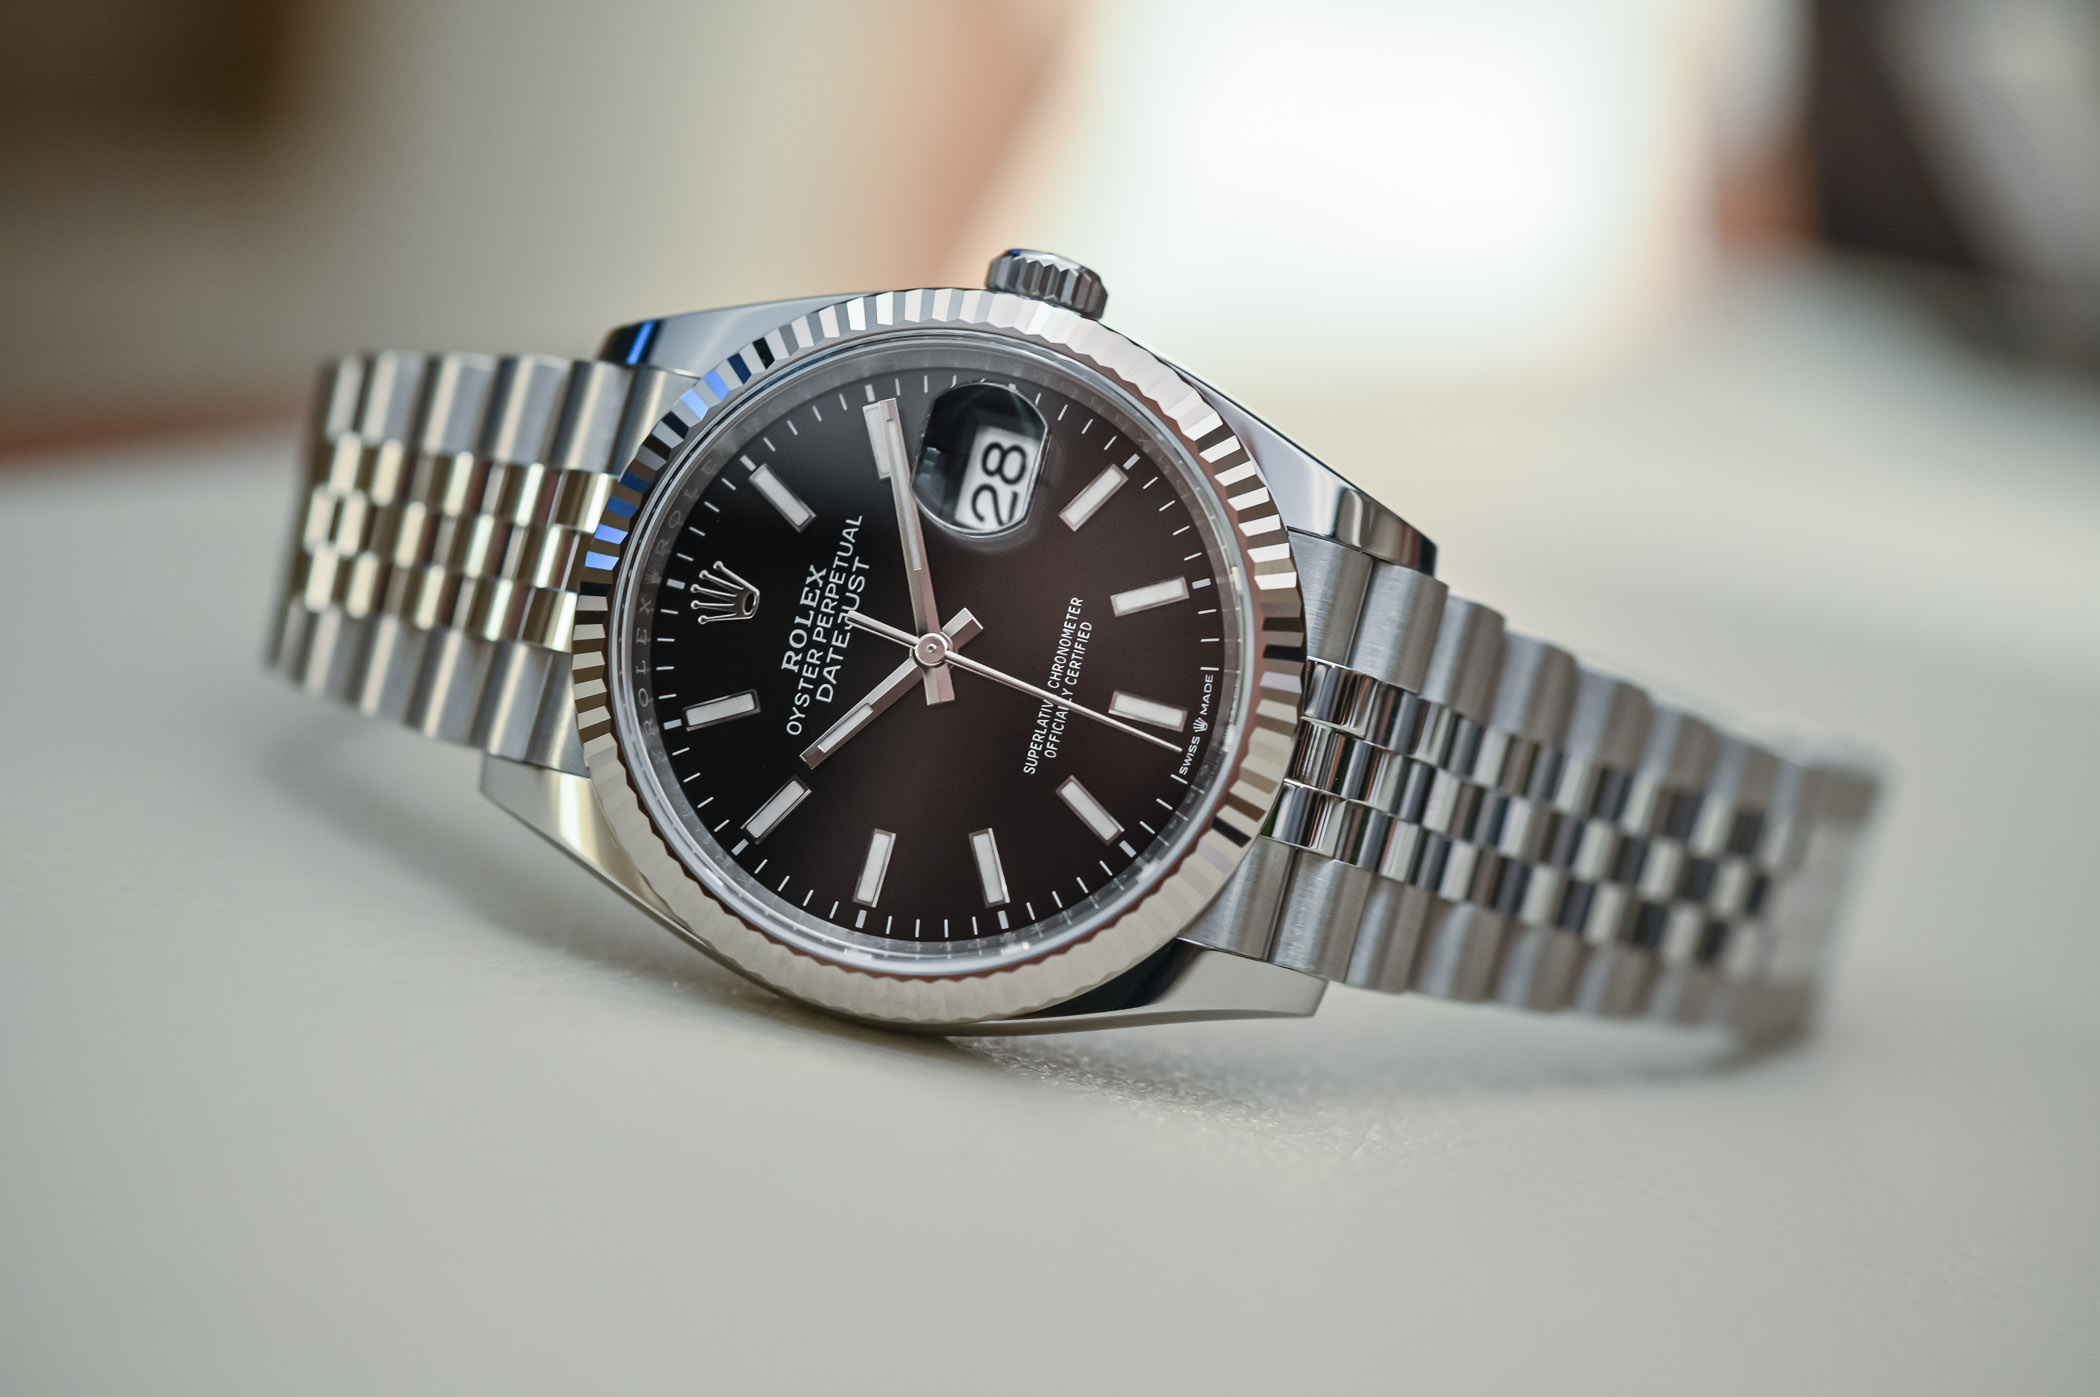 Second-hand Rolex Explorer II Watches For Your Fearless Adventures